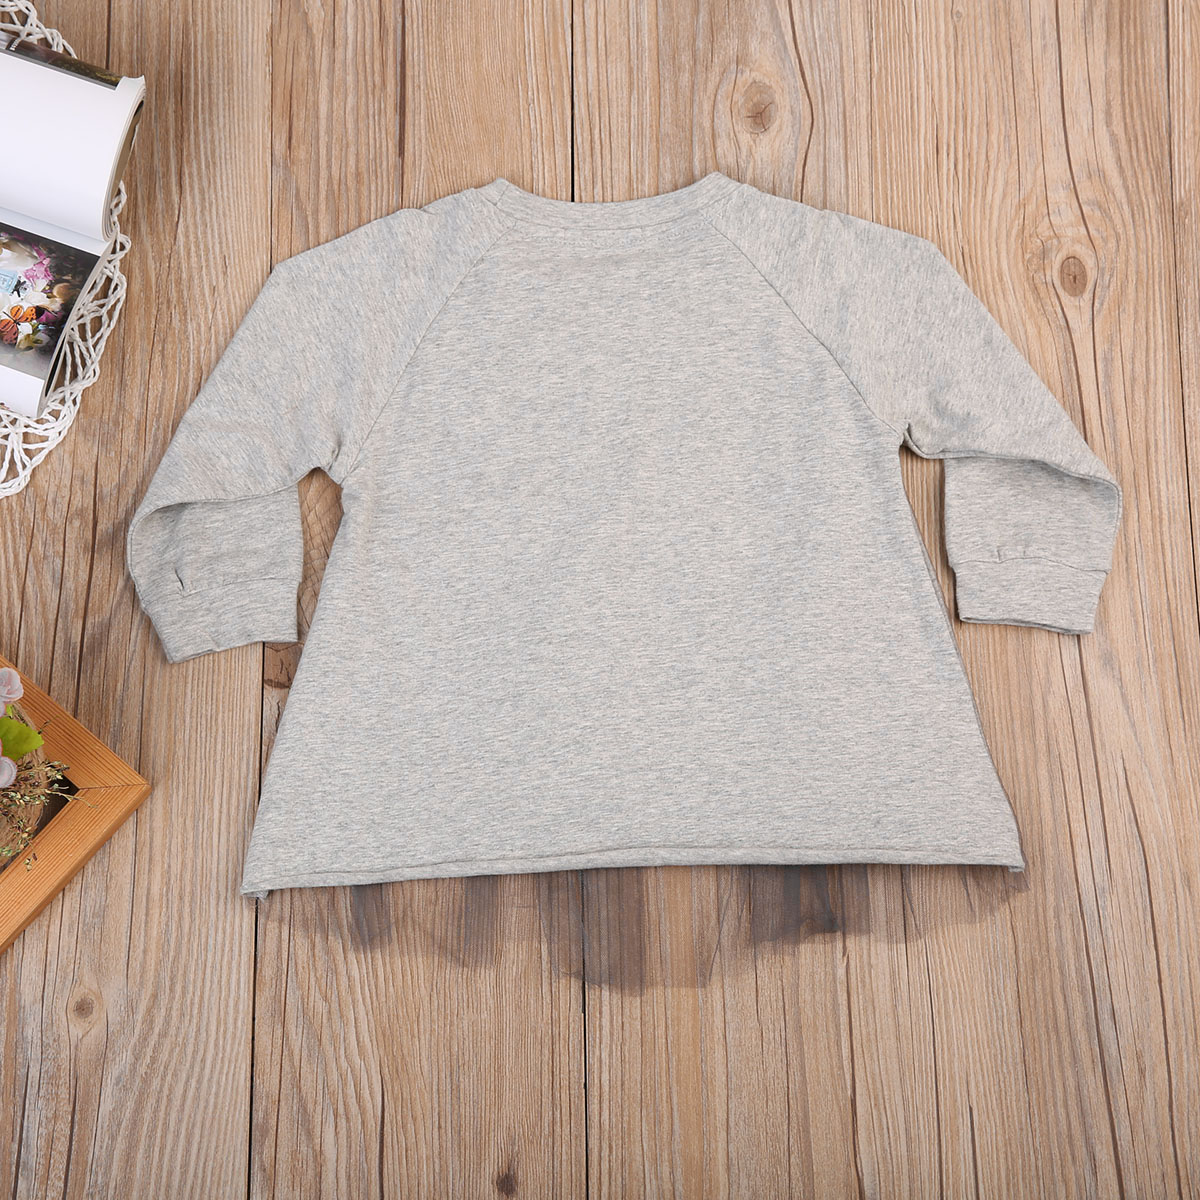 2017 Hot Toddler Infant Baby Girls Clothes Cute Baby Girl Lace A Line Long Sleeves Tulle Dress Casual Baby Autumn Clothing